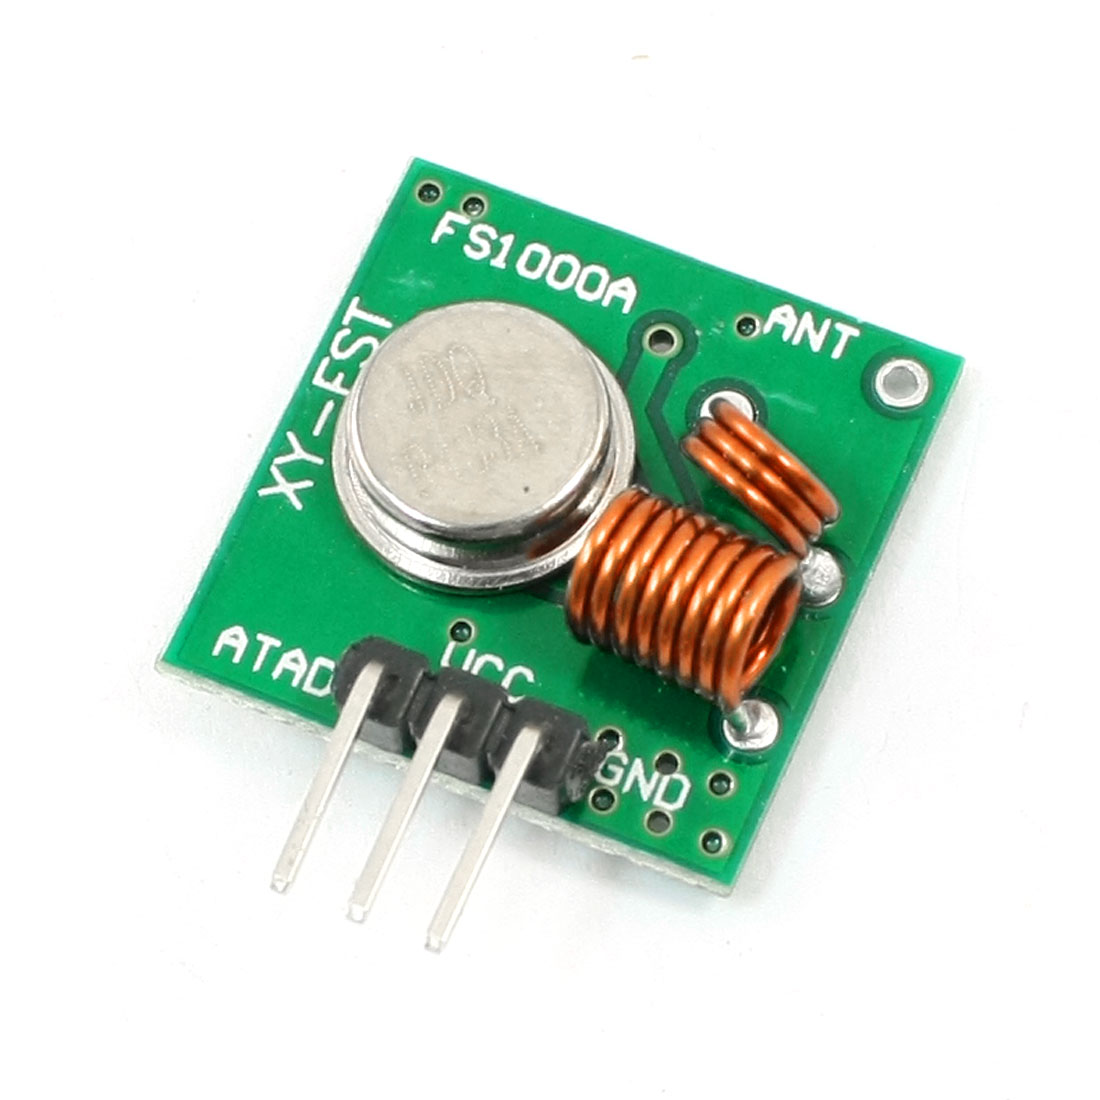 DC3-12V 433.92MHZ Super-Regenerative 16dbm Wireless Transmitter Module